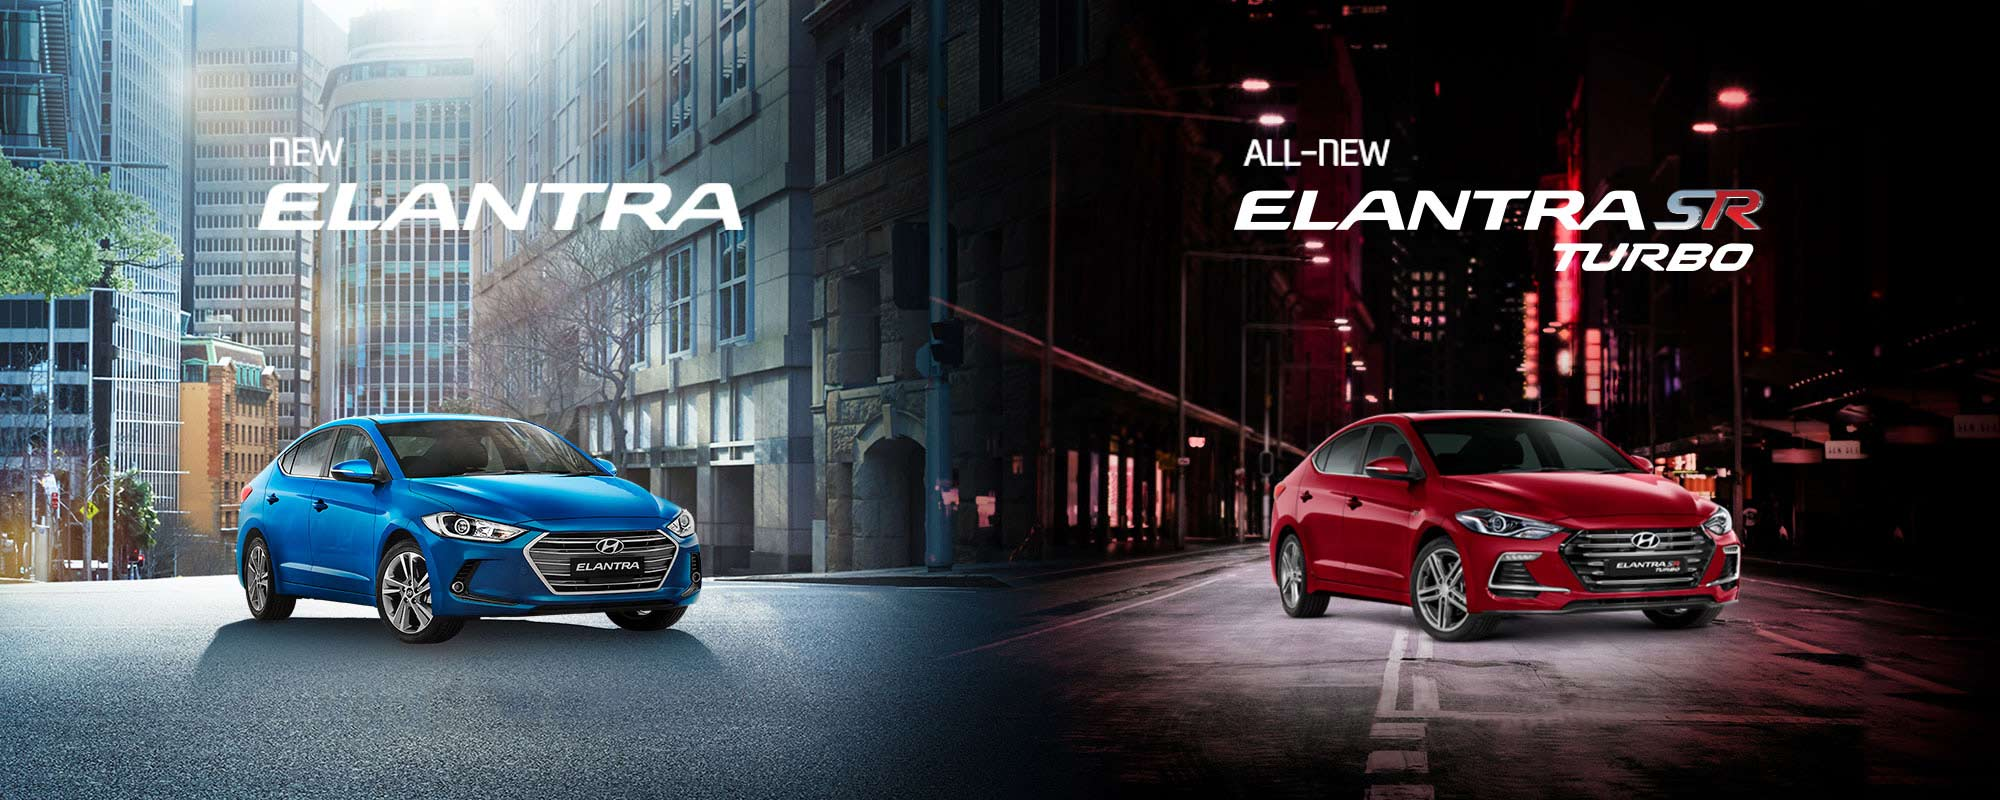 The all-new Elantra Sedan and Elantra SR Turbo, now available at Brendale Hyundai in Brisbane.